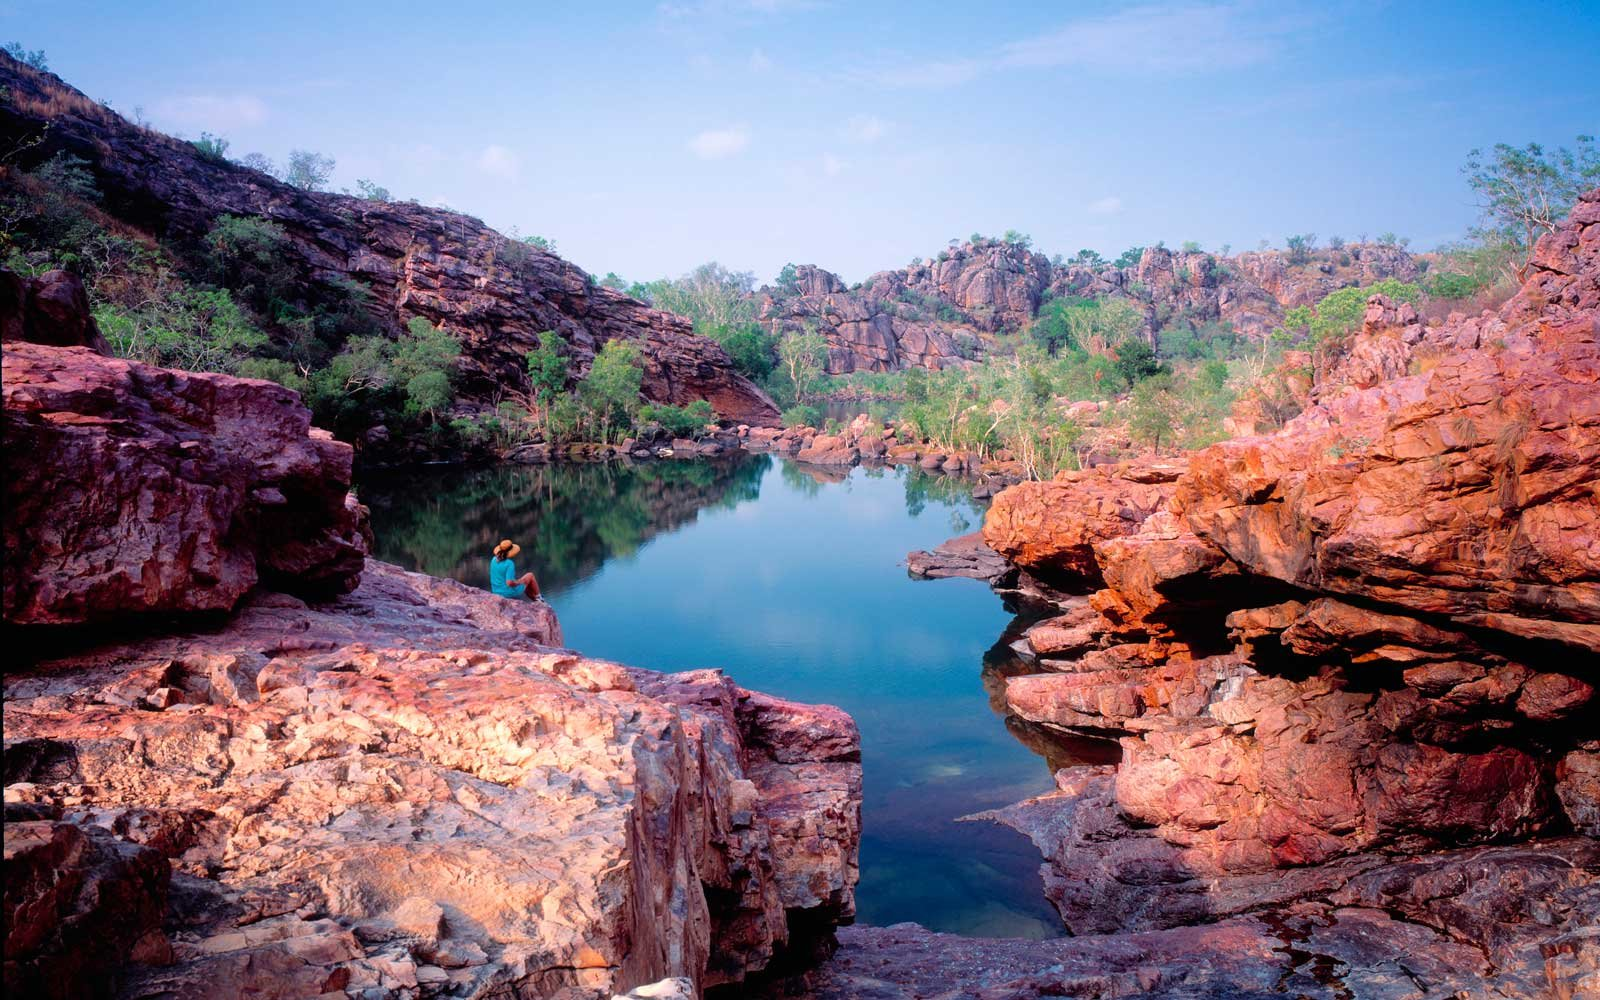 Koolpin Gorge, Kakadu National Park, Northern Territory, Australia